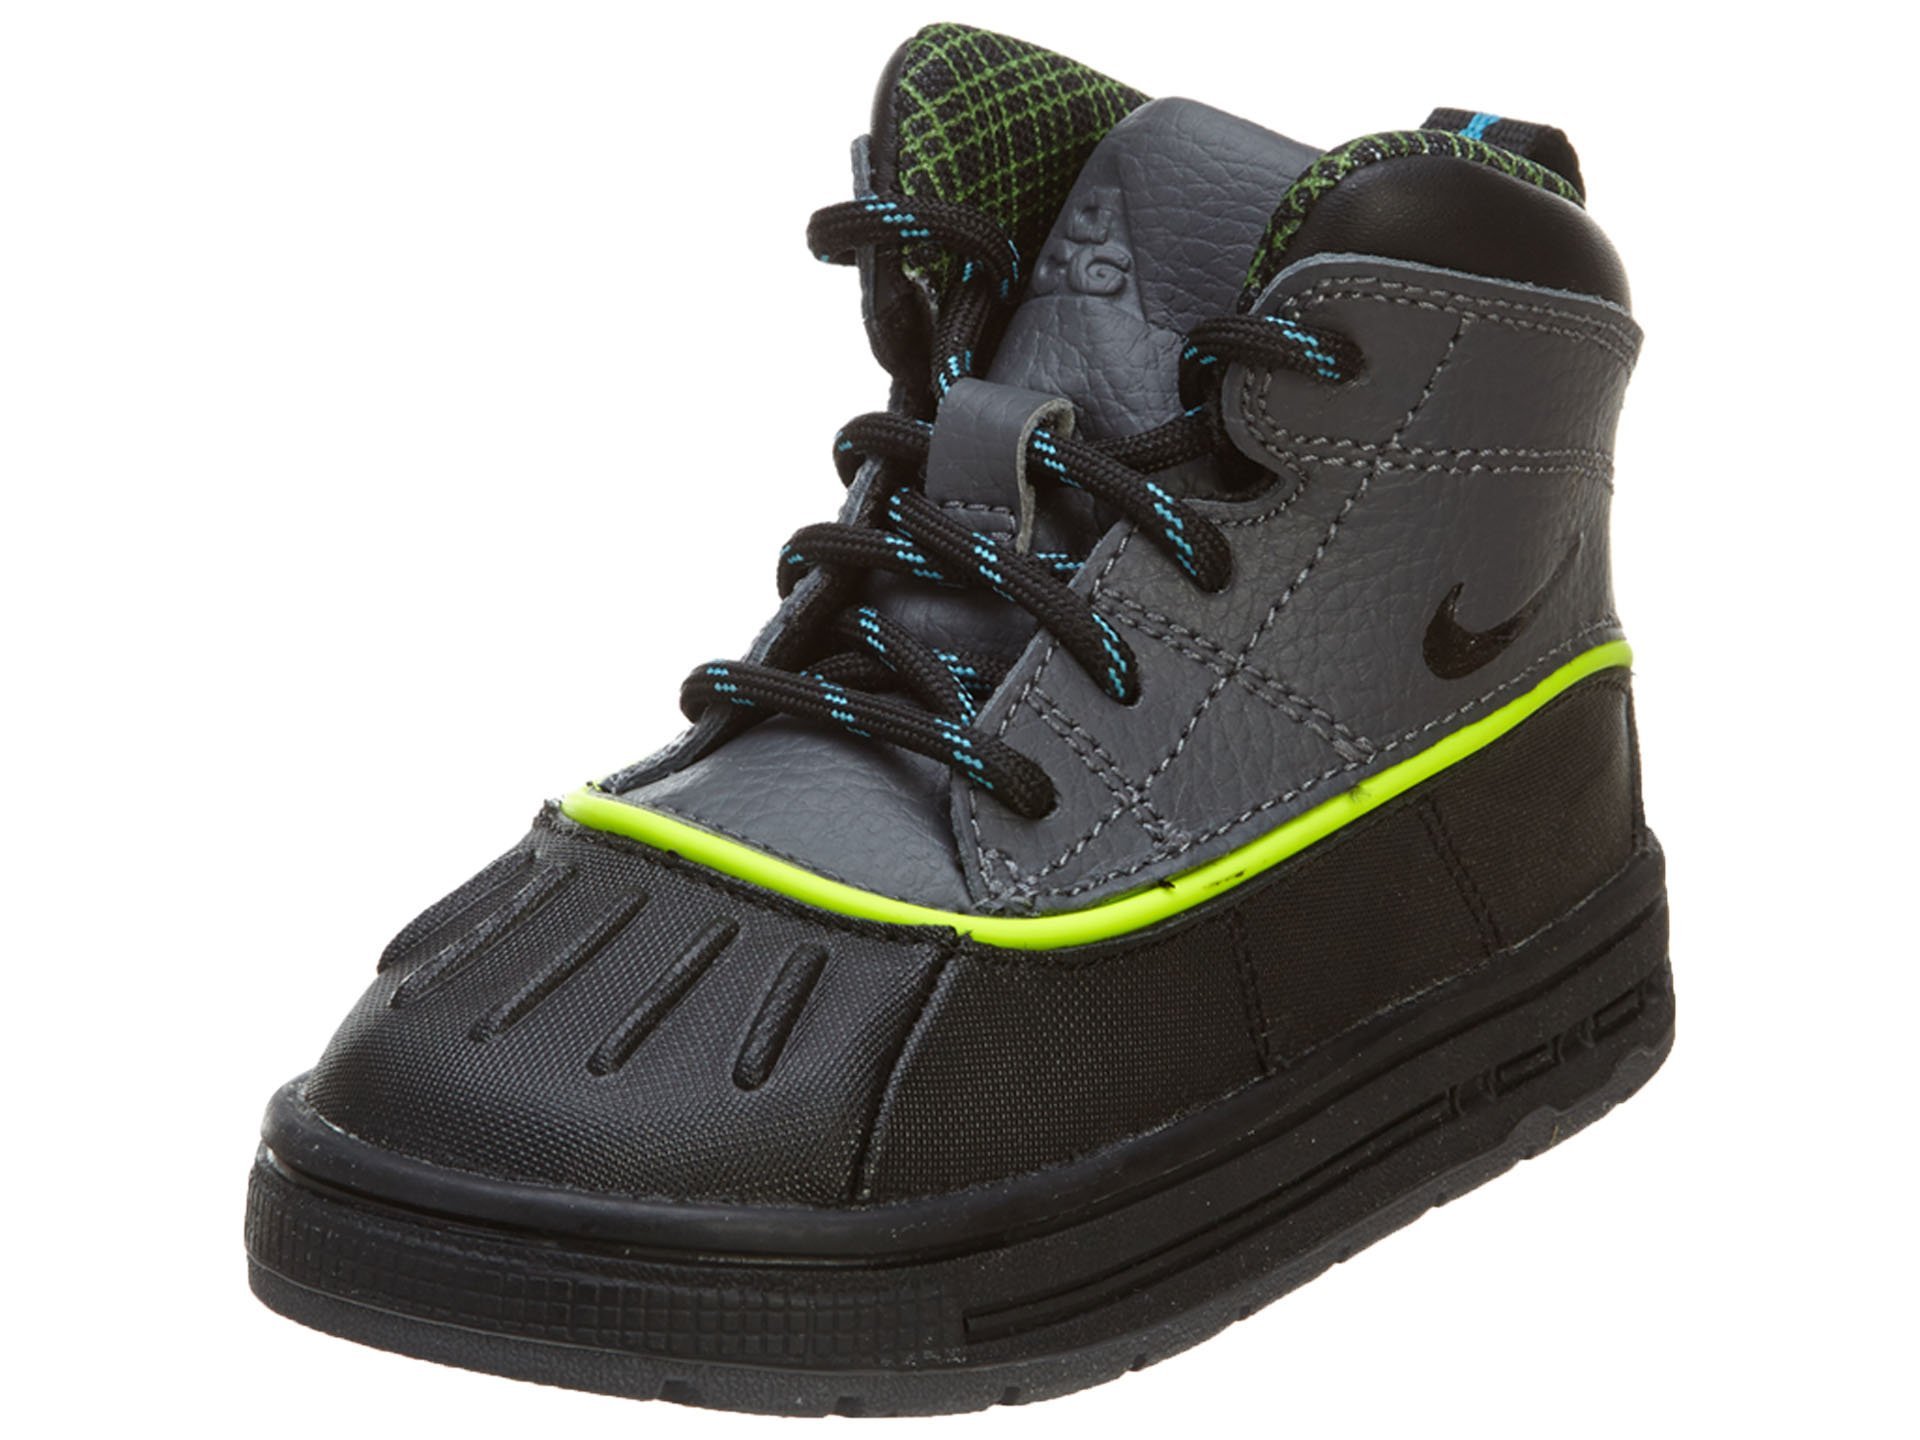 Nike Woodside 2 High (Td) Toddlers Boys/Girls Style: 524874-002 Size: 4 by Nike (Image #1)